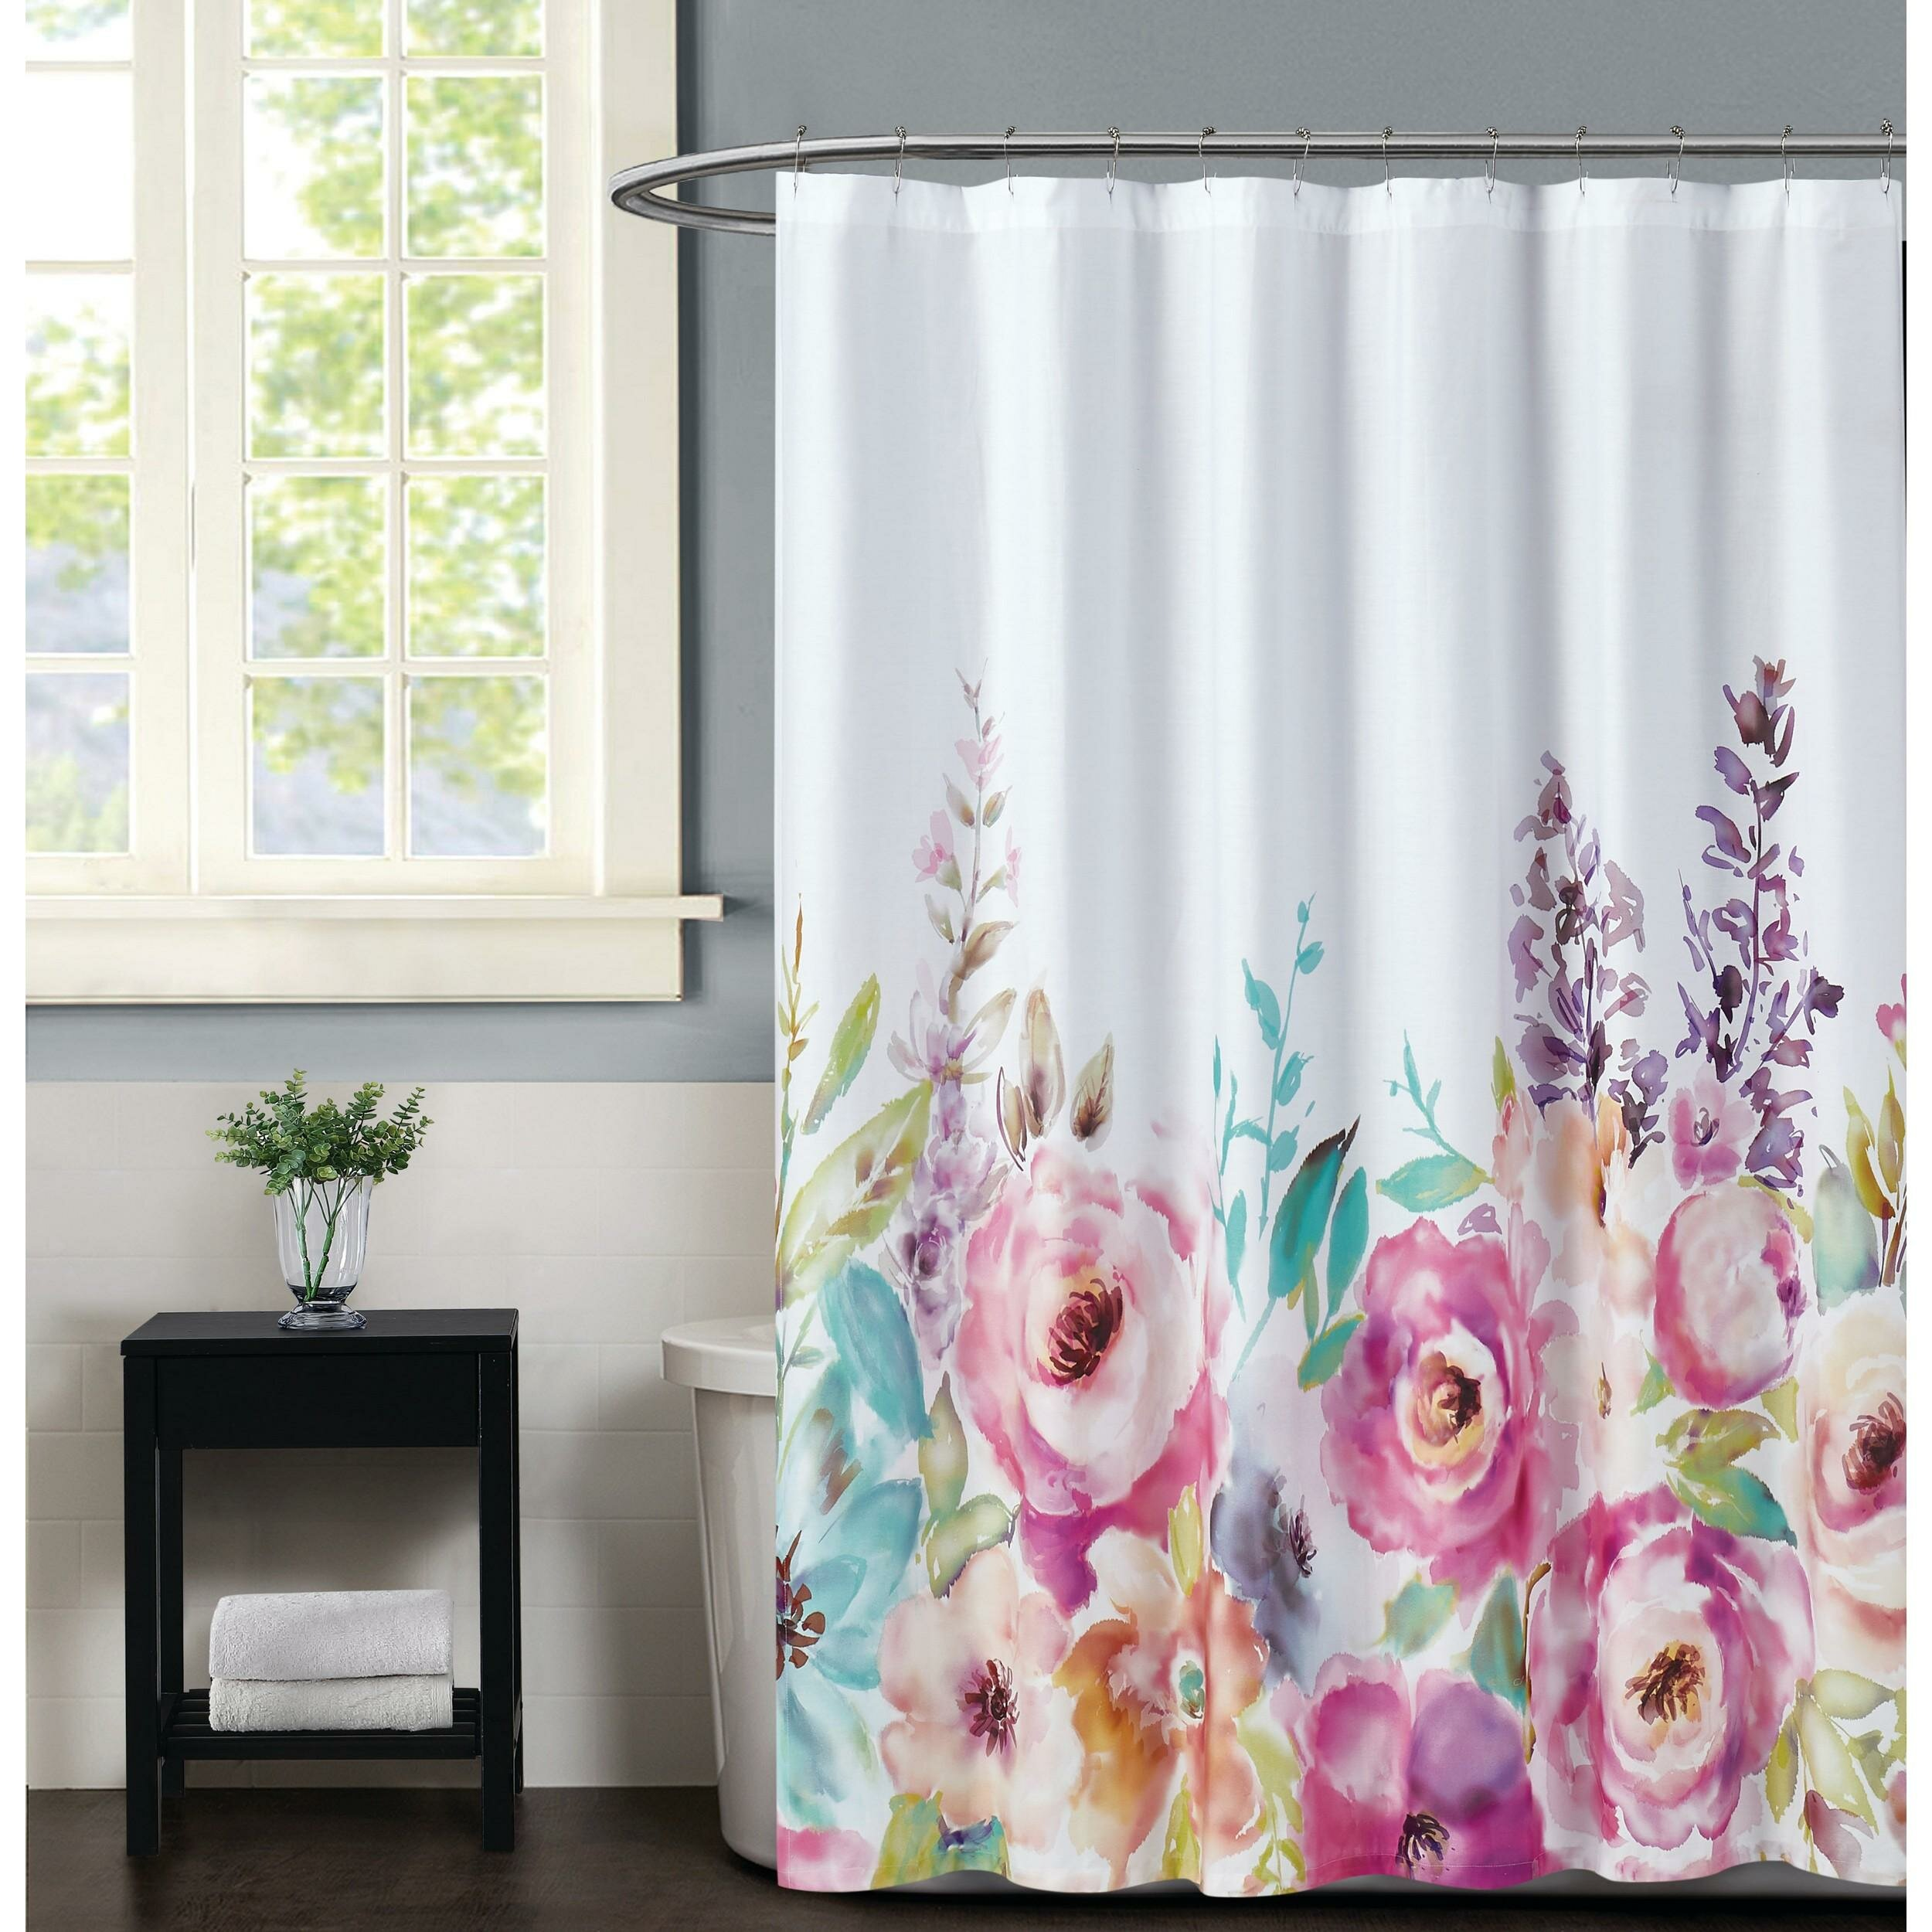 Christian Siriano Spring 100 Cotton Floral Single Shower Curtain Wayfair